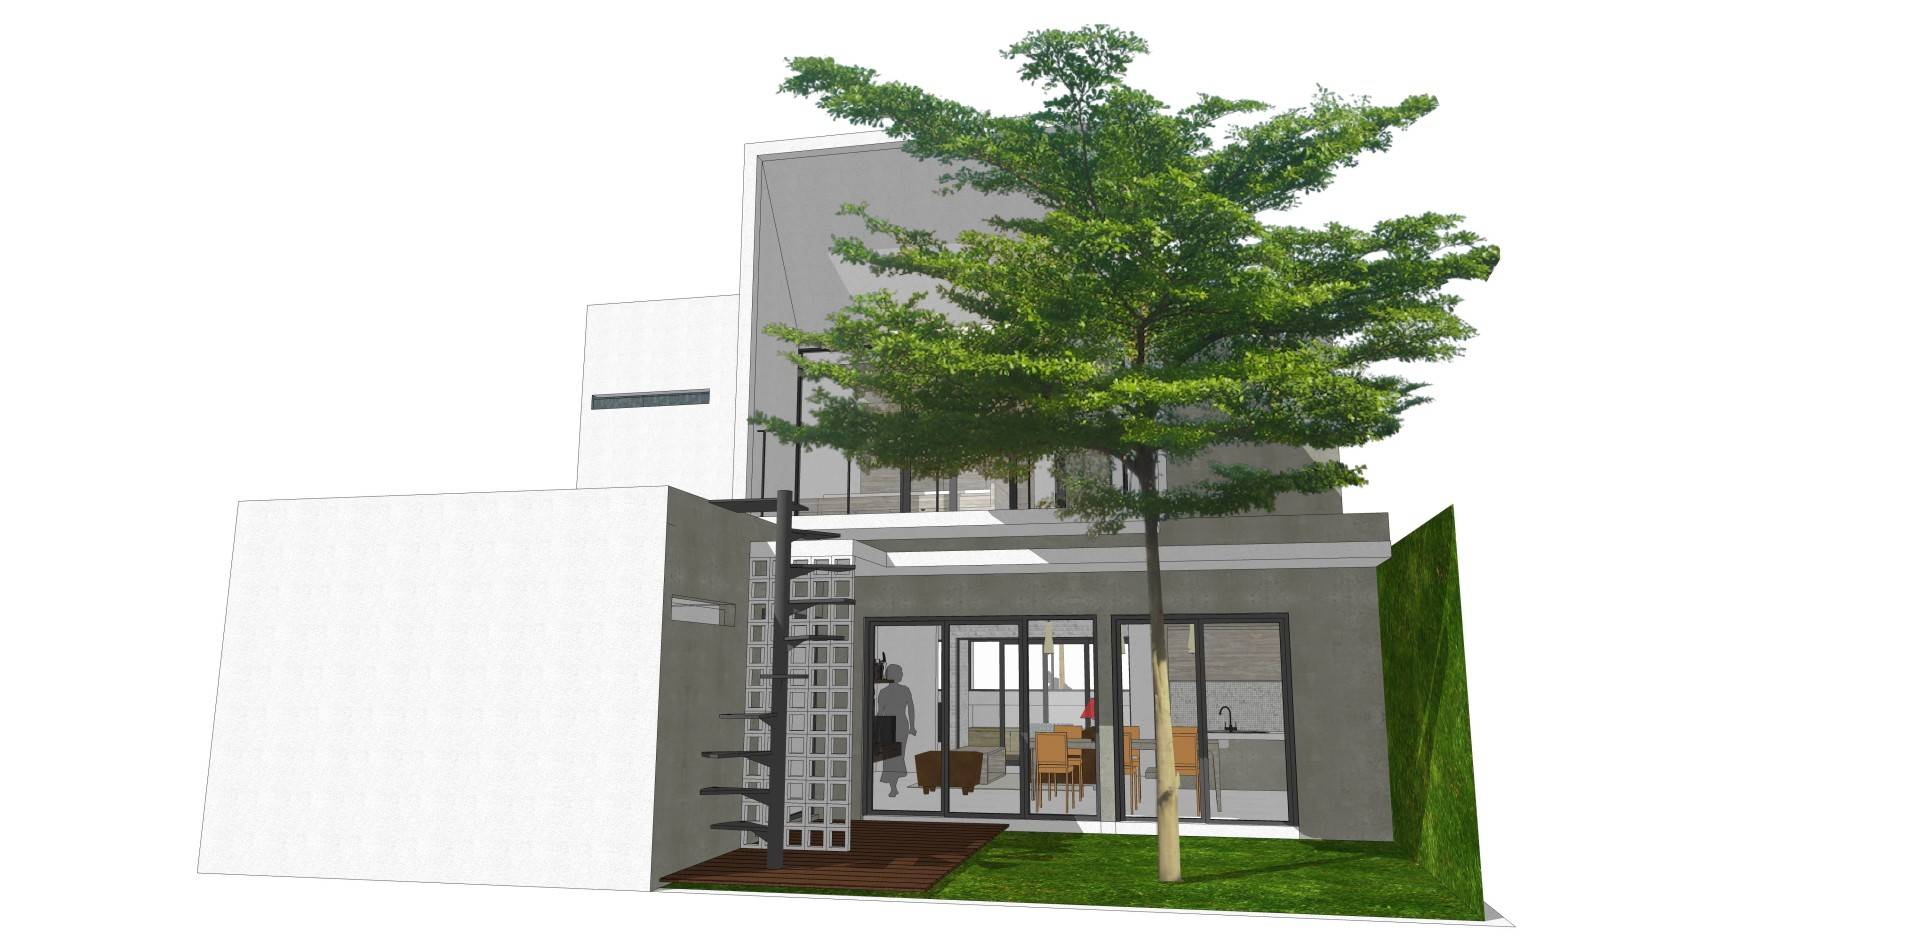 Dadan Adriansyah Rfs House Depok Depok Rear View  Ample Open Area To Provide Cross Air Circulation And Plenty Of Sunlight 4864